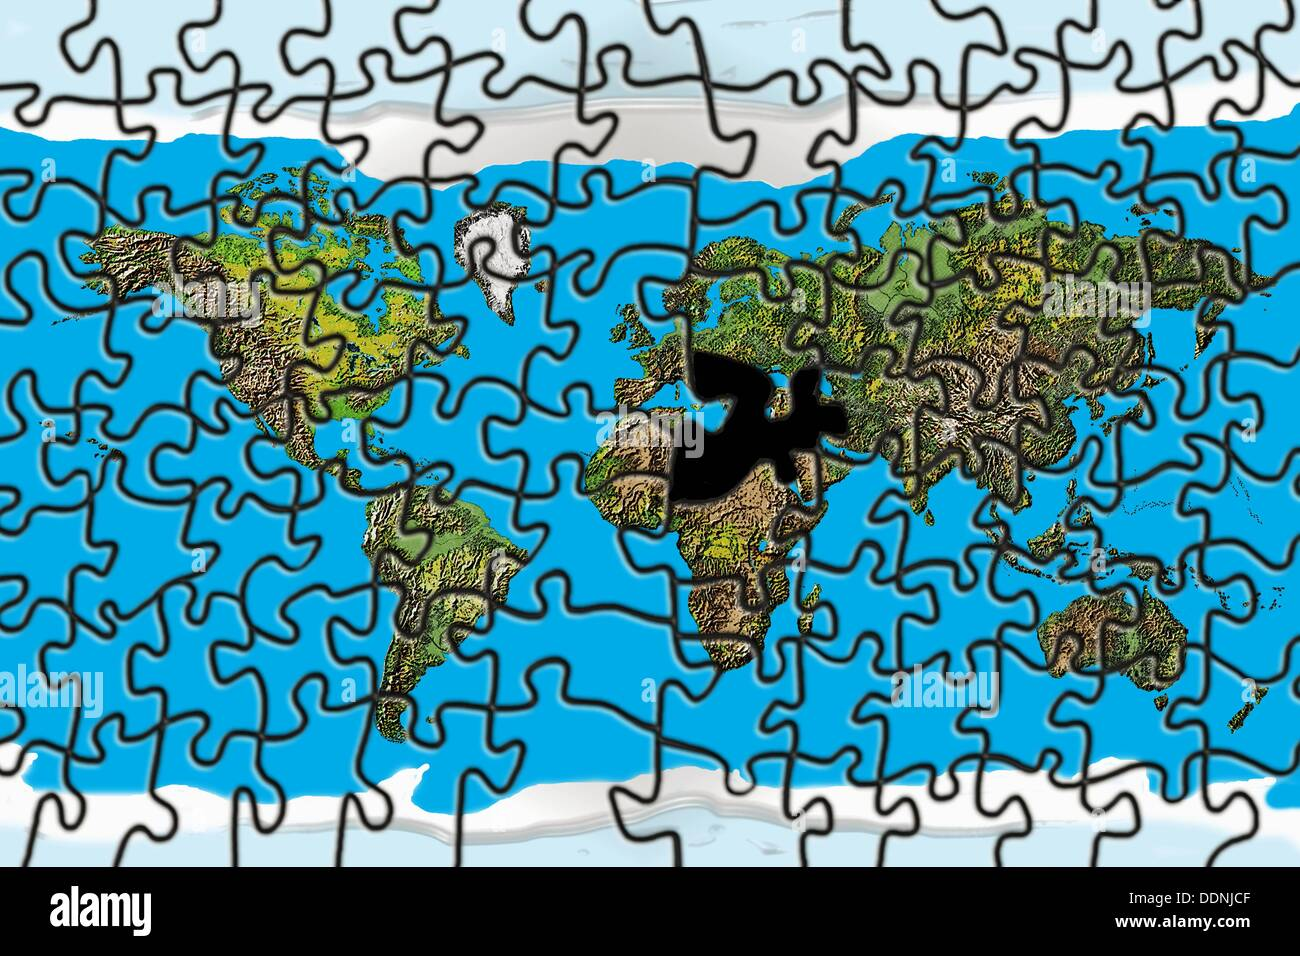 World puzzle with missing piece in the Middle East and North